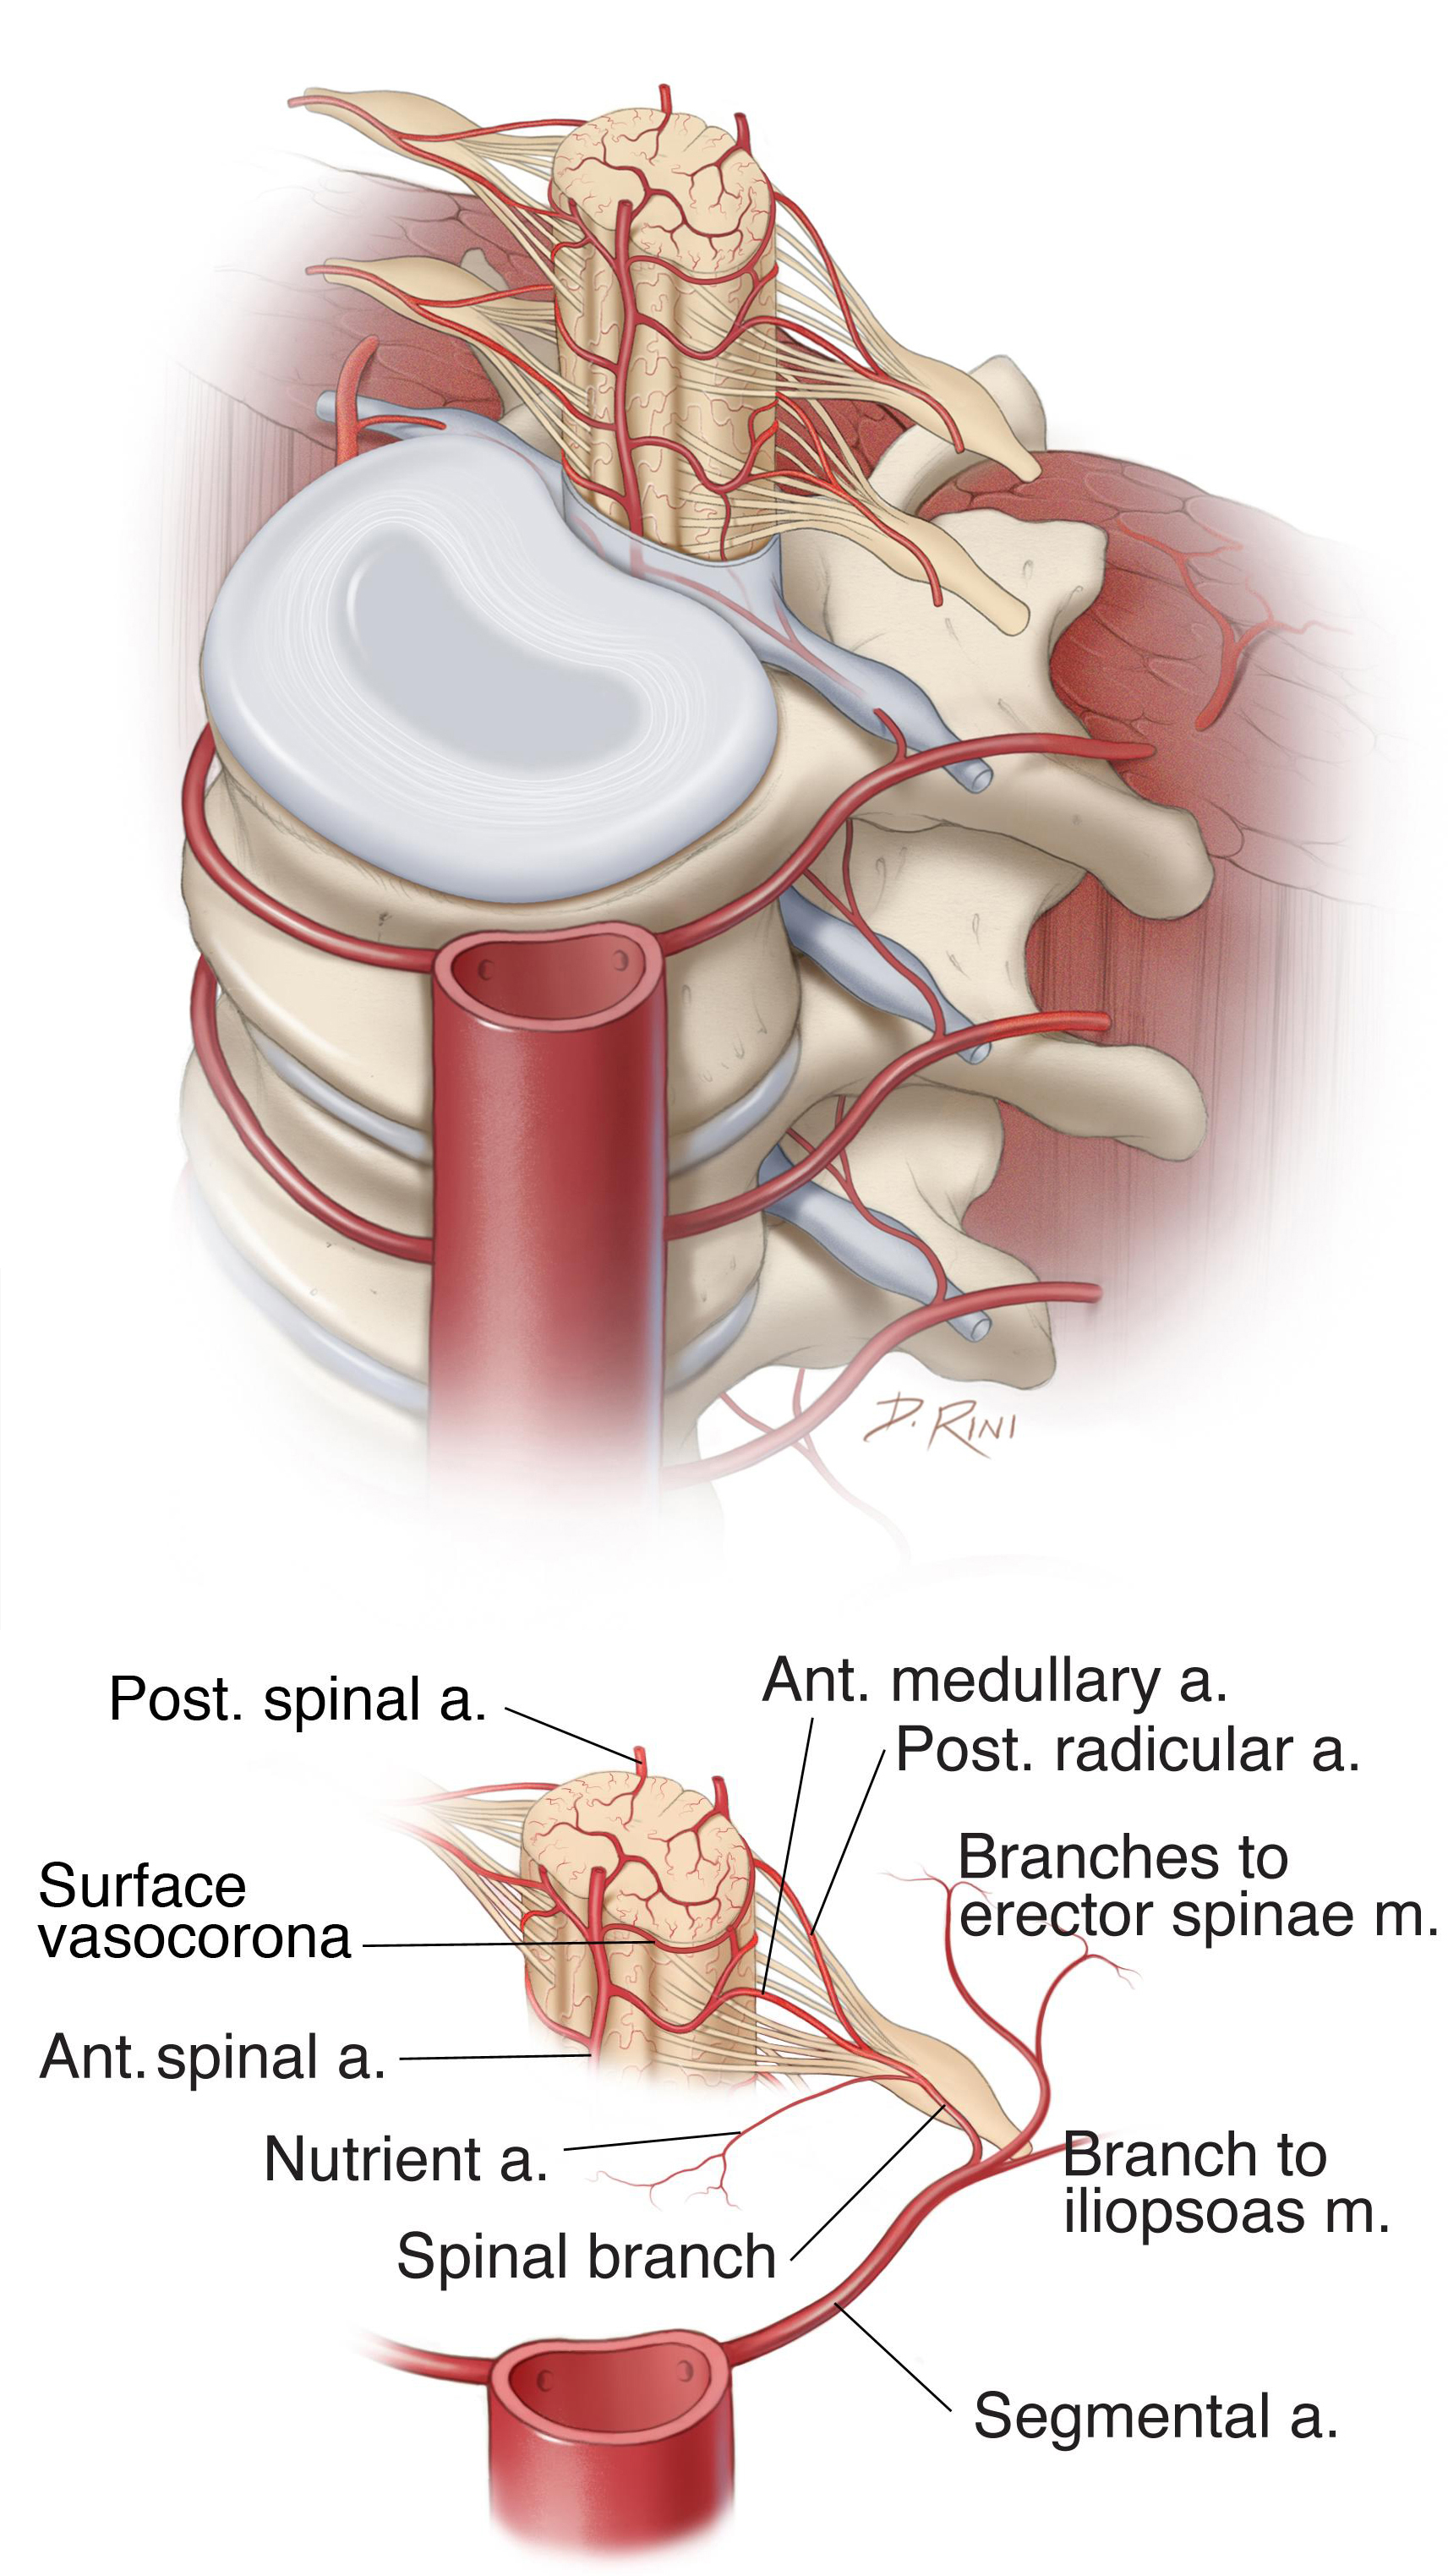 Figure 6: Diagram of the spinal cord vascular anatomy. Please see text.